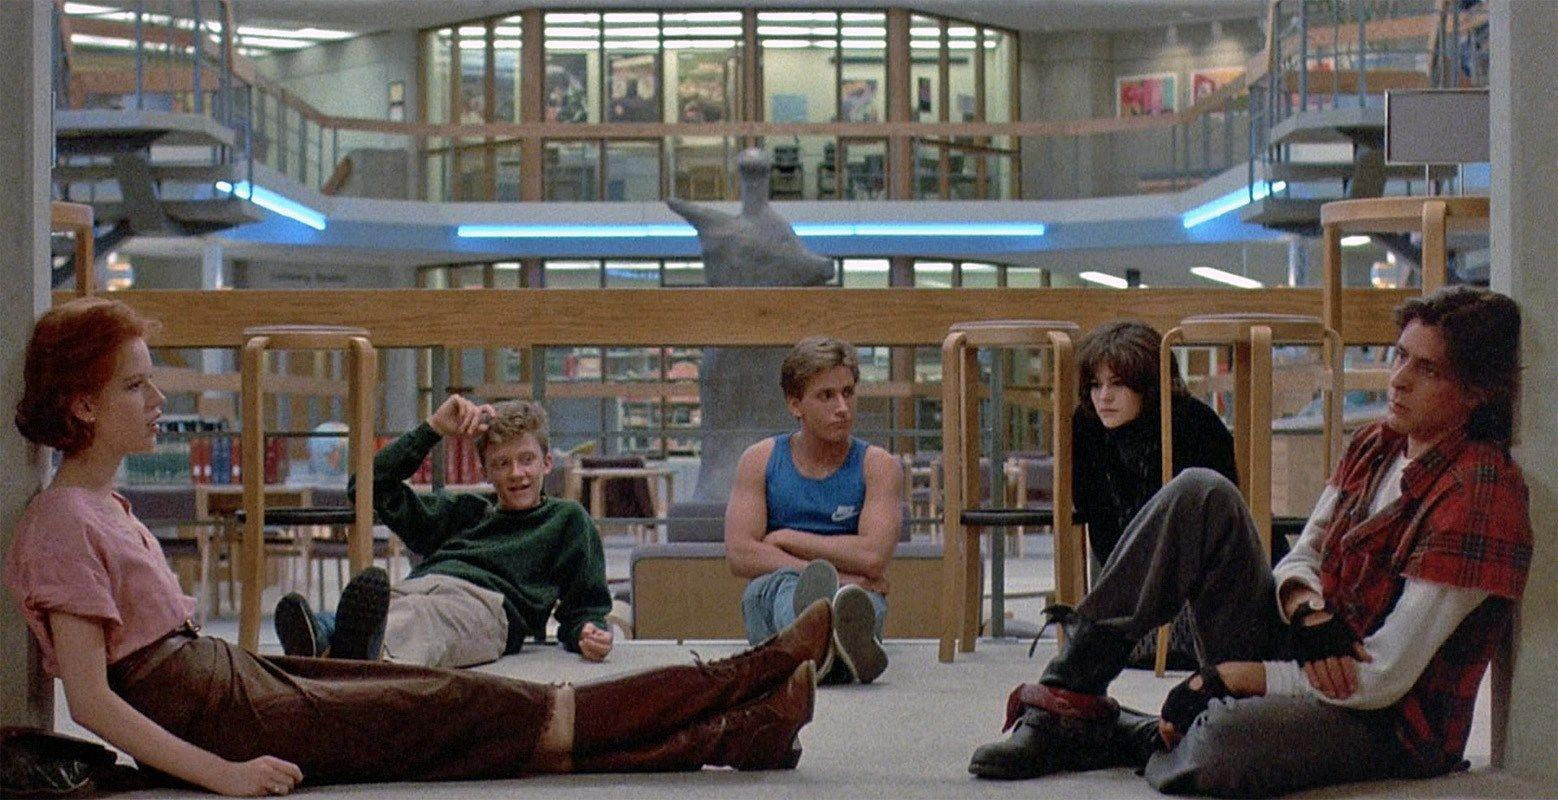 theresa puchta on the 1985 film the breakfast club by john hughes Ally sheedy celebrity profile and joined the so-called brat pack in 1985 after appearing in john hughes' the breakfast club and sincerely yours, the breakfast.